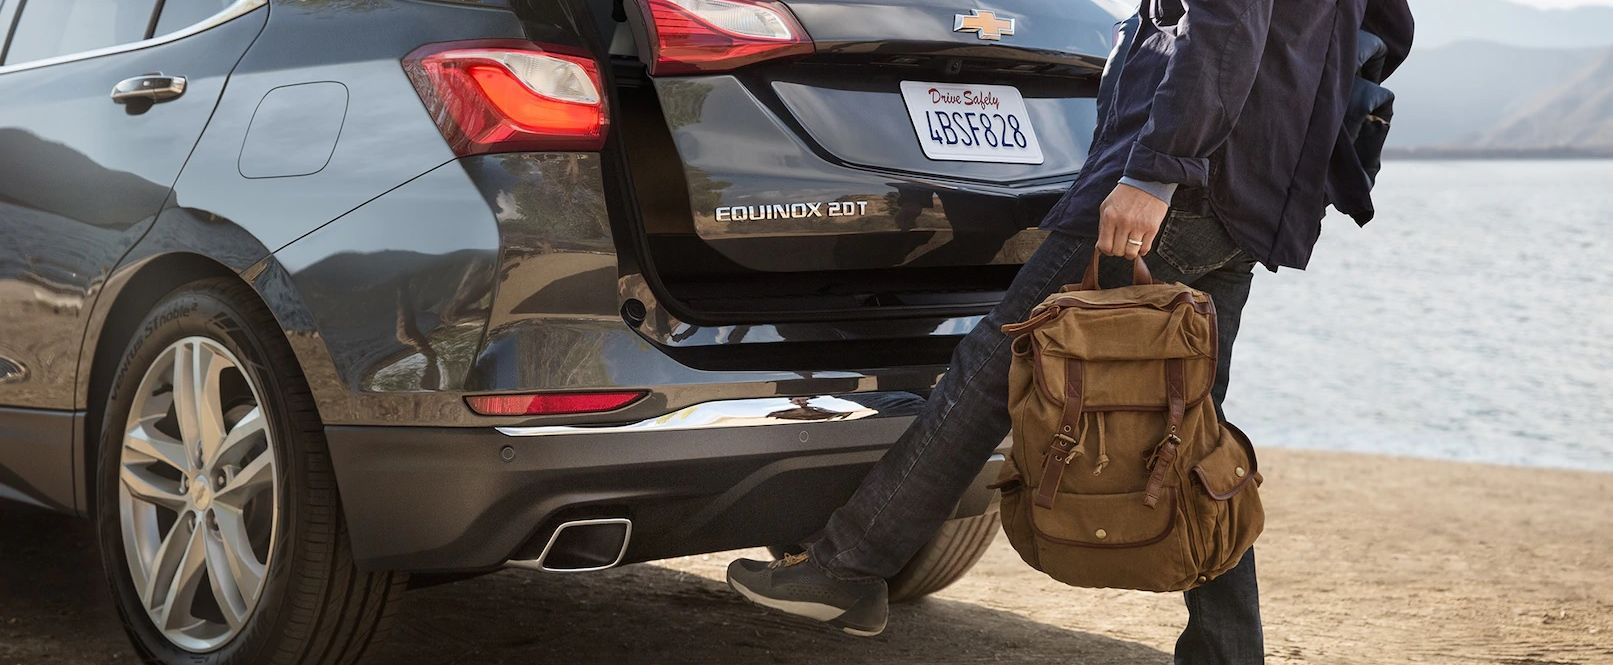 Open the Equinox's Liftgate with a Wave of Your Foot!